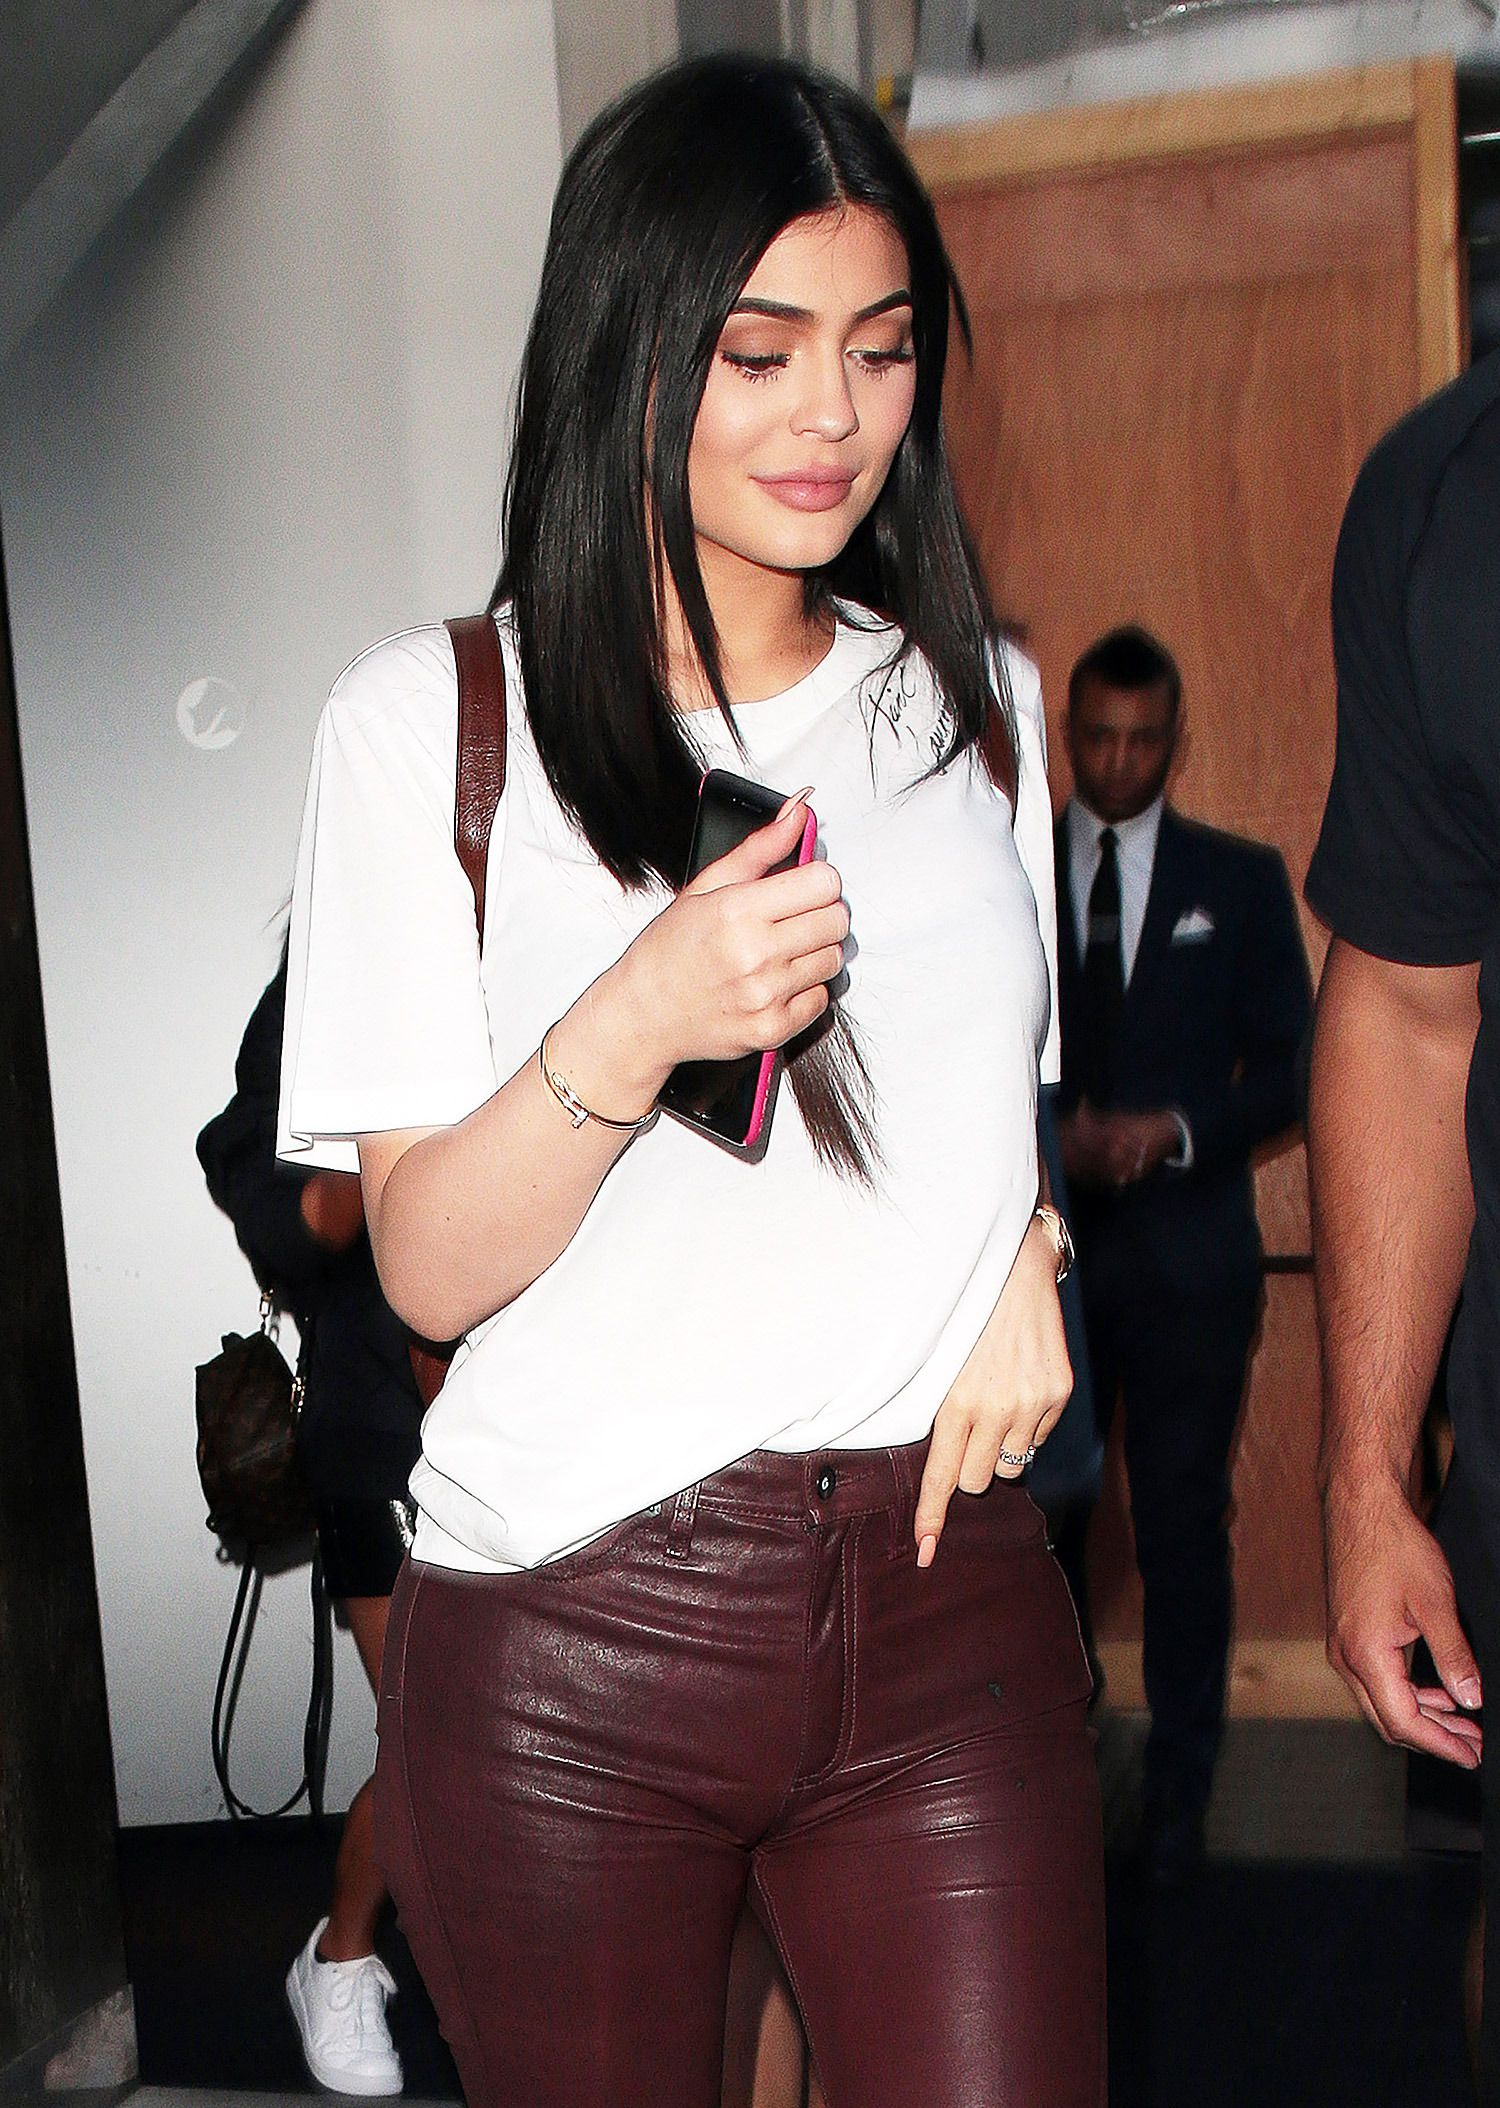 See How Kylie Jenner Has Been Hiding Her Growing Baby Bump recommend